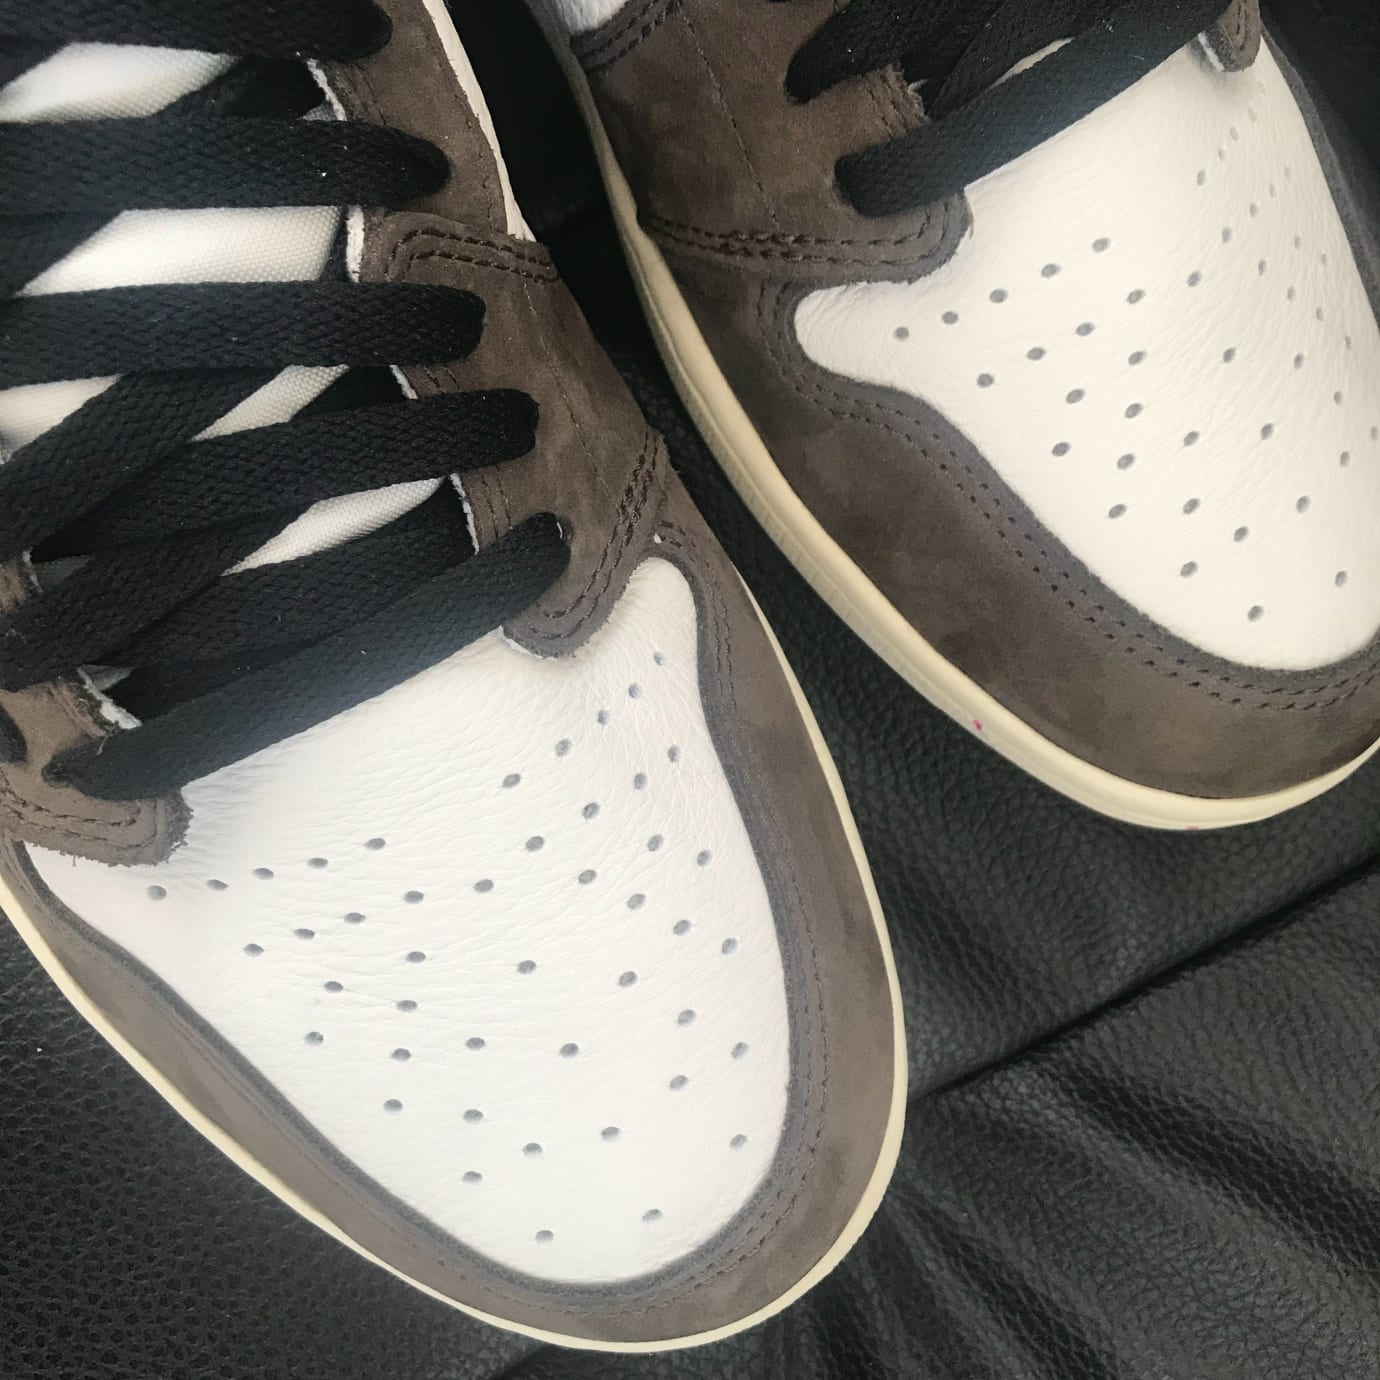 70d9961e89dc5 Image via Weibo.cn Travis Scott x Air Jordan 1 High OG TS SP CD4487-100  (Toe Box